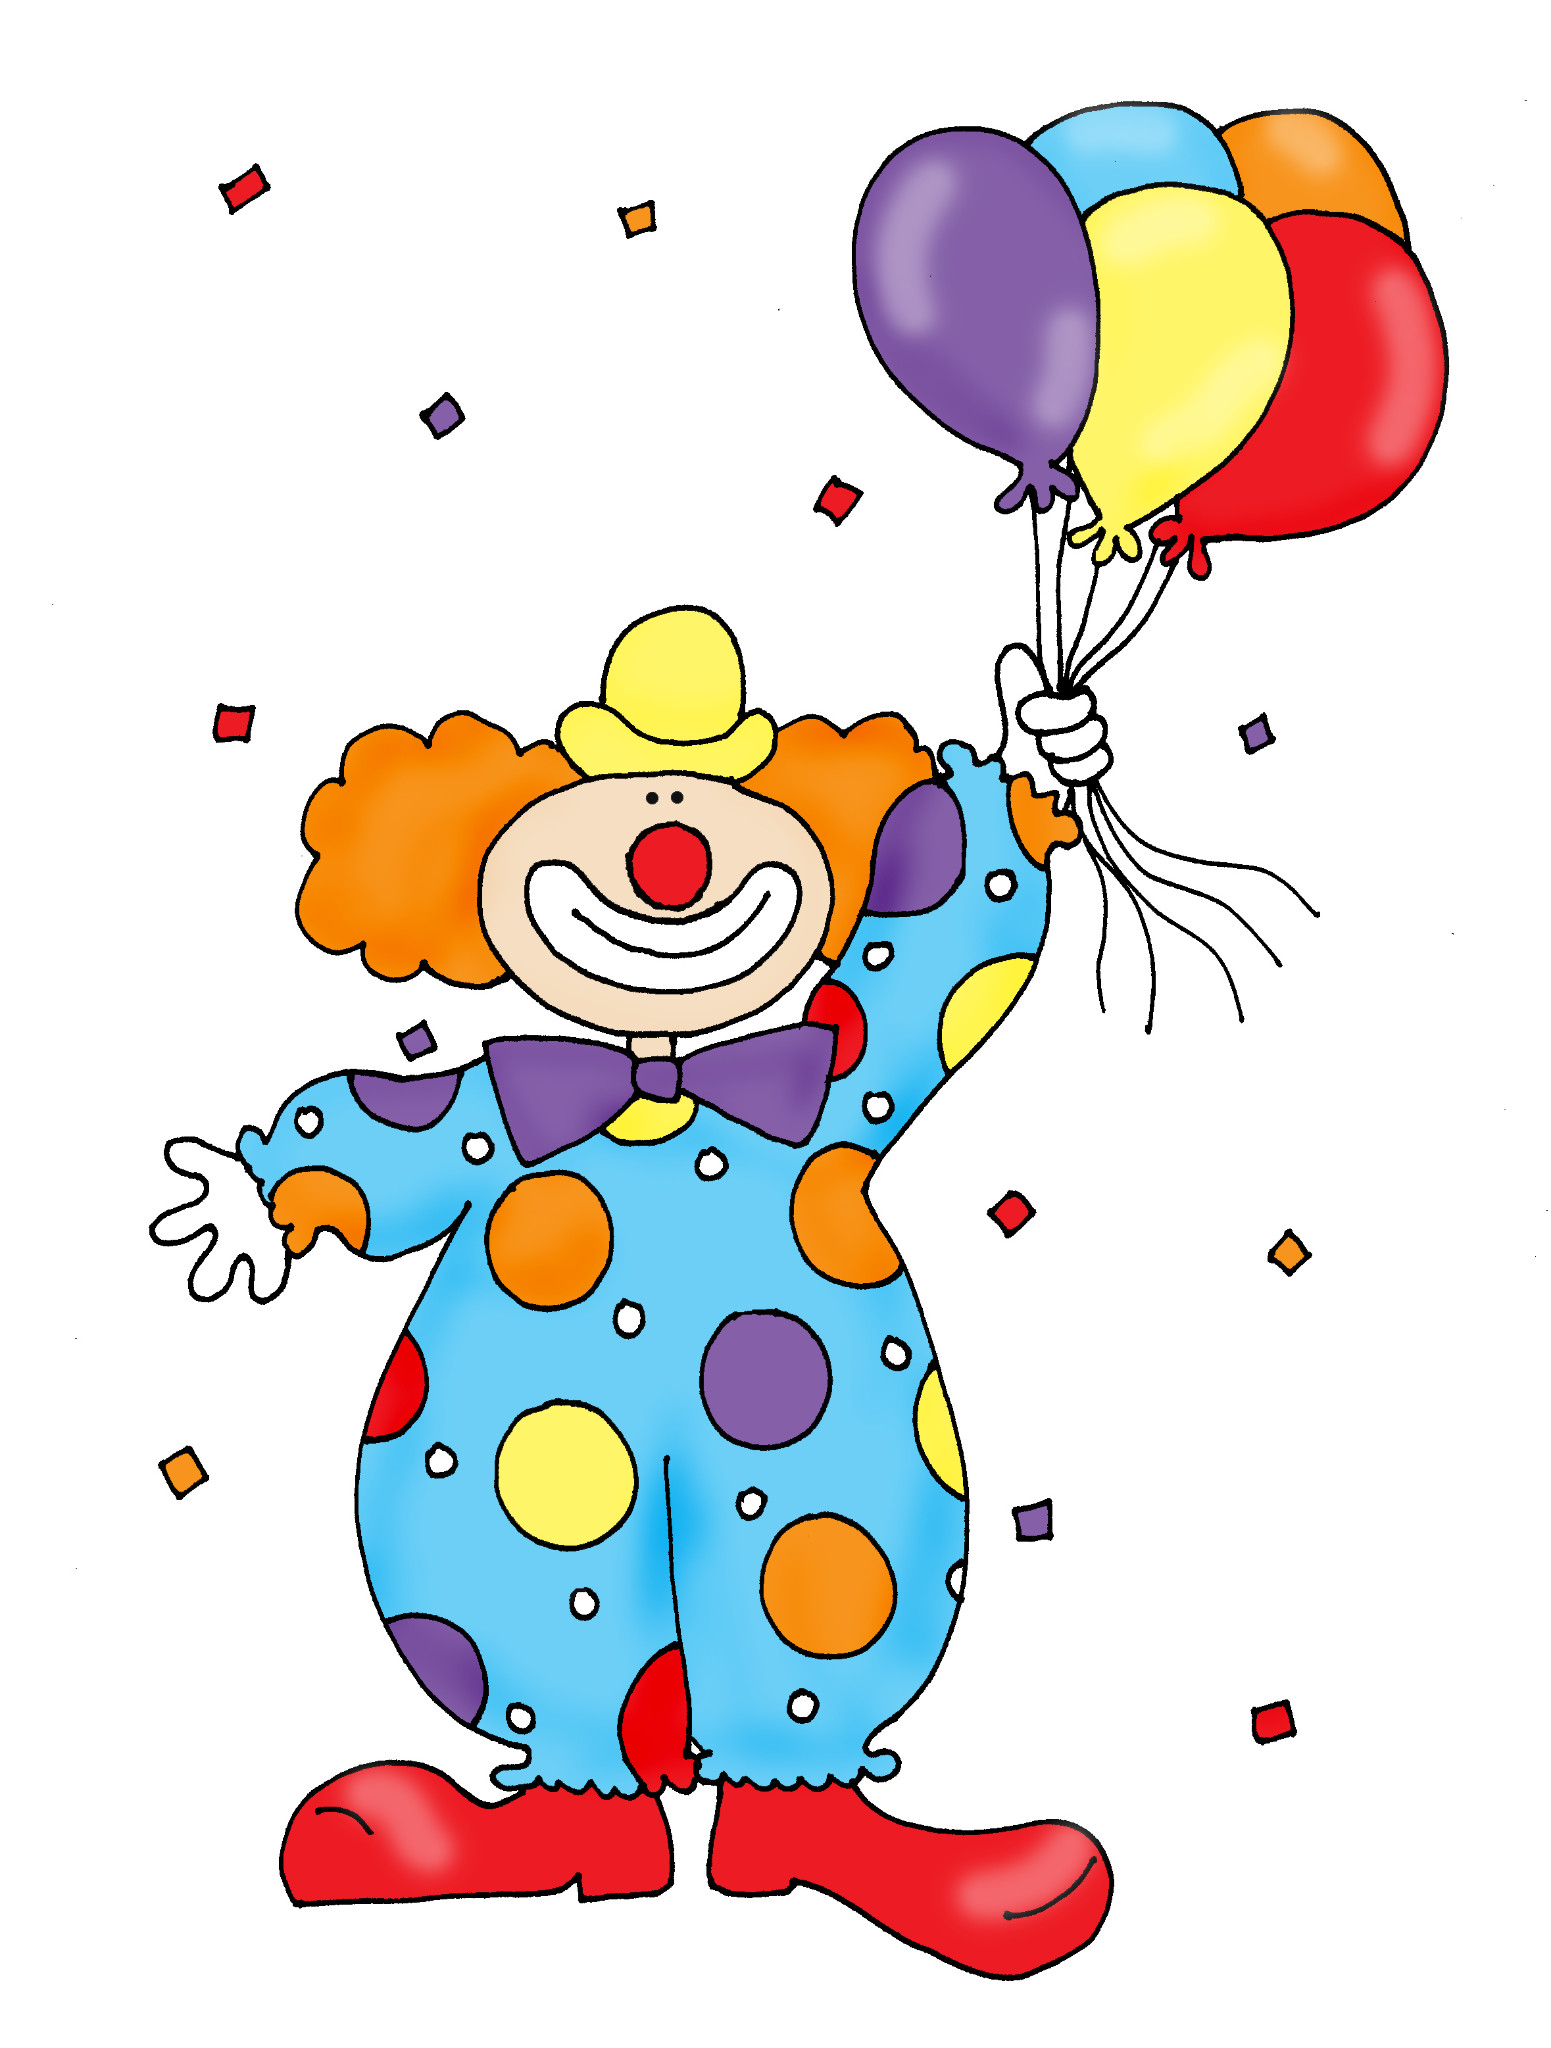 Balloon animal clown clipart png library download Balloon Animals Clipart | Free download best Balloon Animals Clipart ... png library download